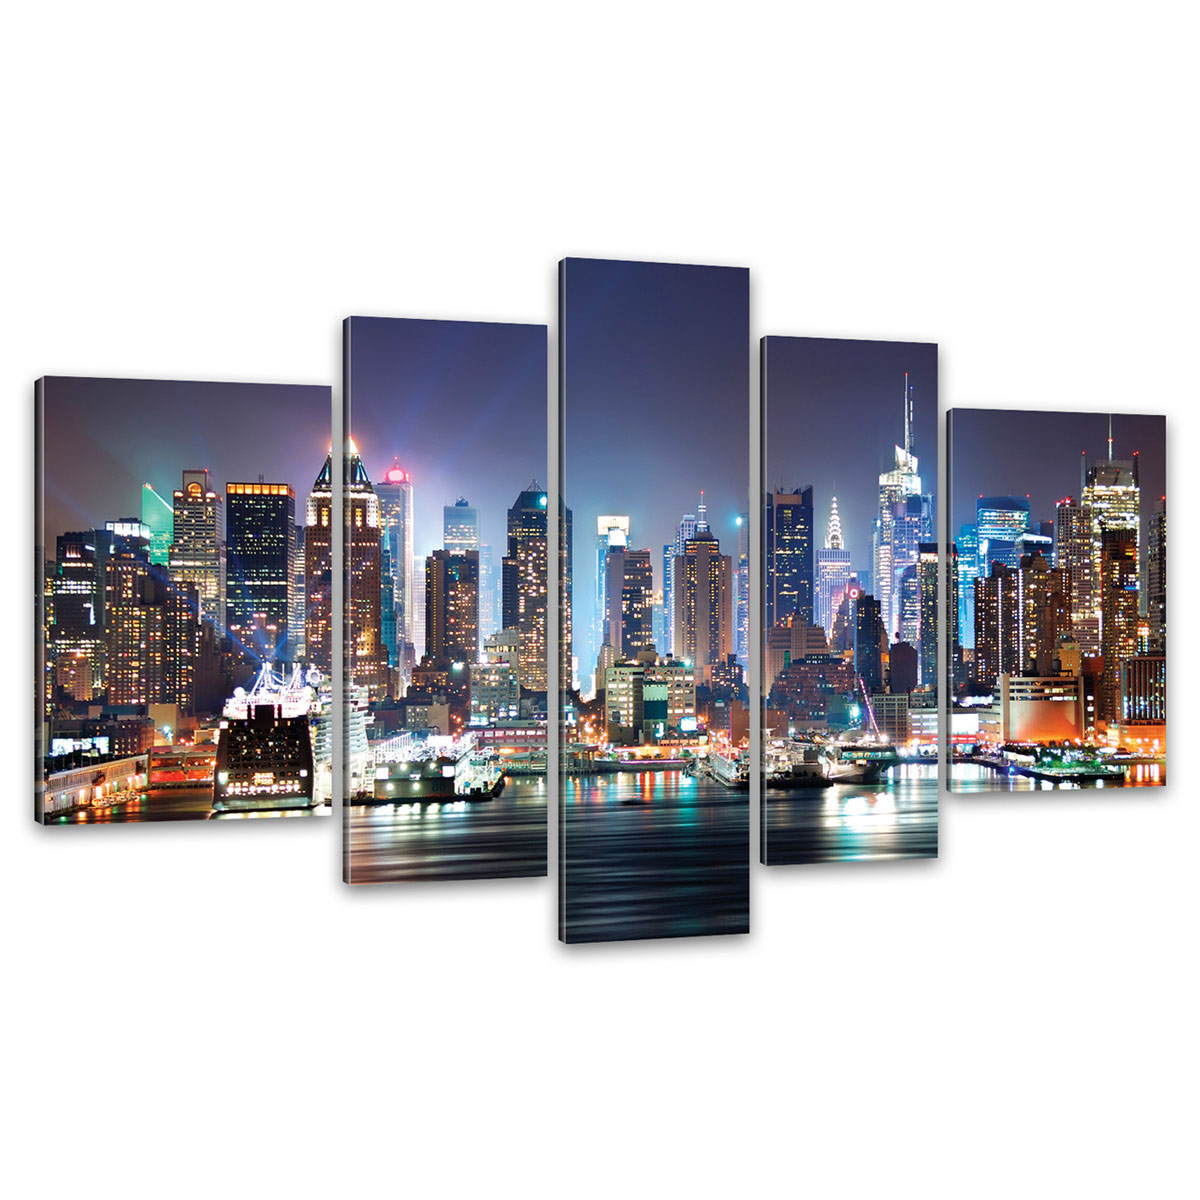 kunstdruck 5 teilige leinwand new york city skyline. Black Bedroom Furniture Sets. Home Design Ideas